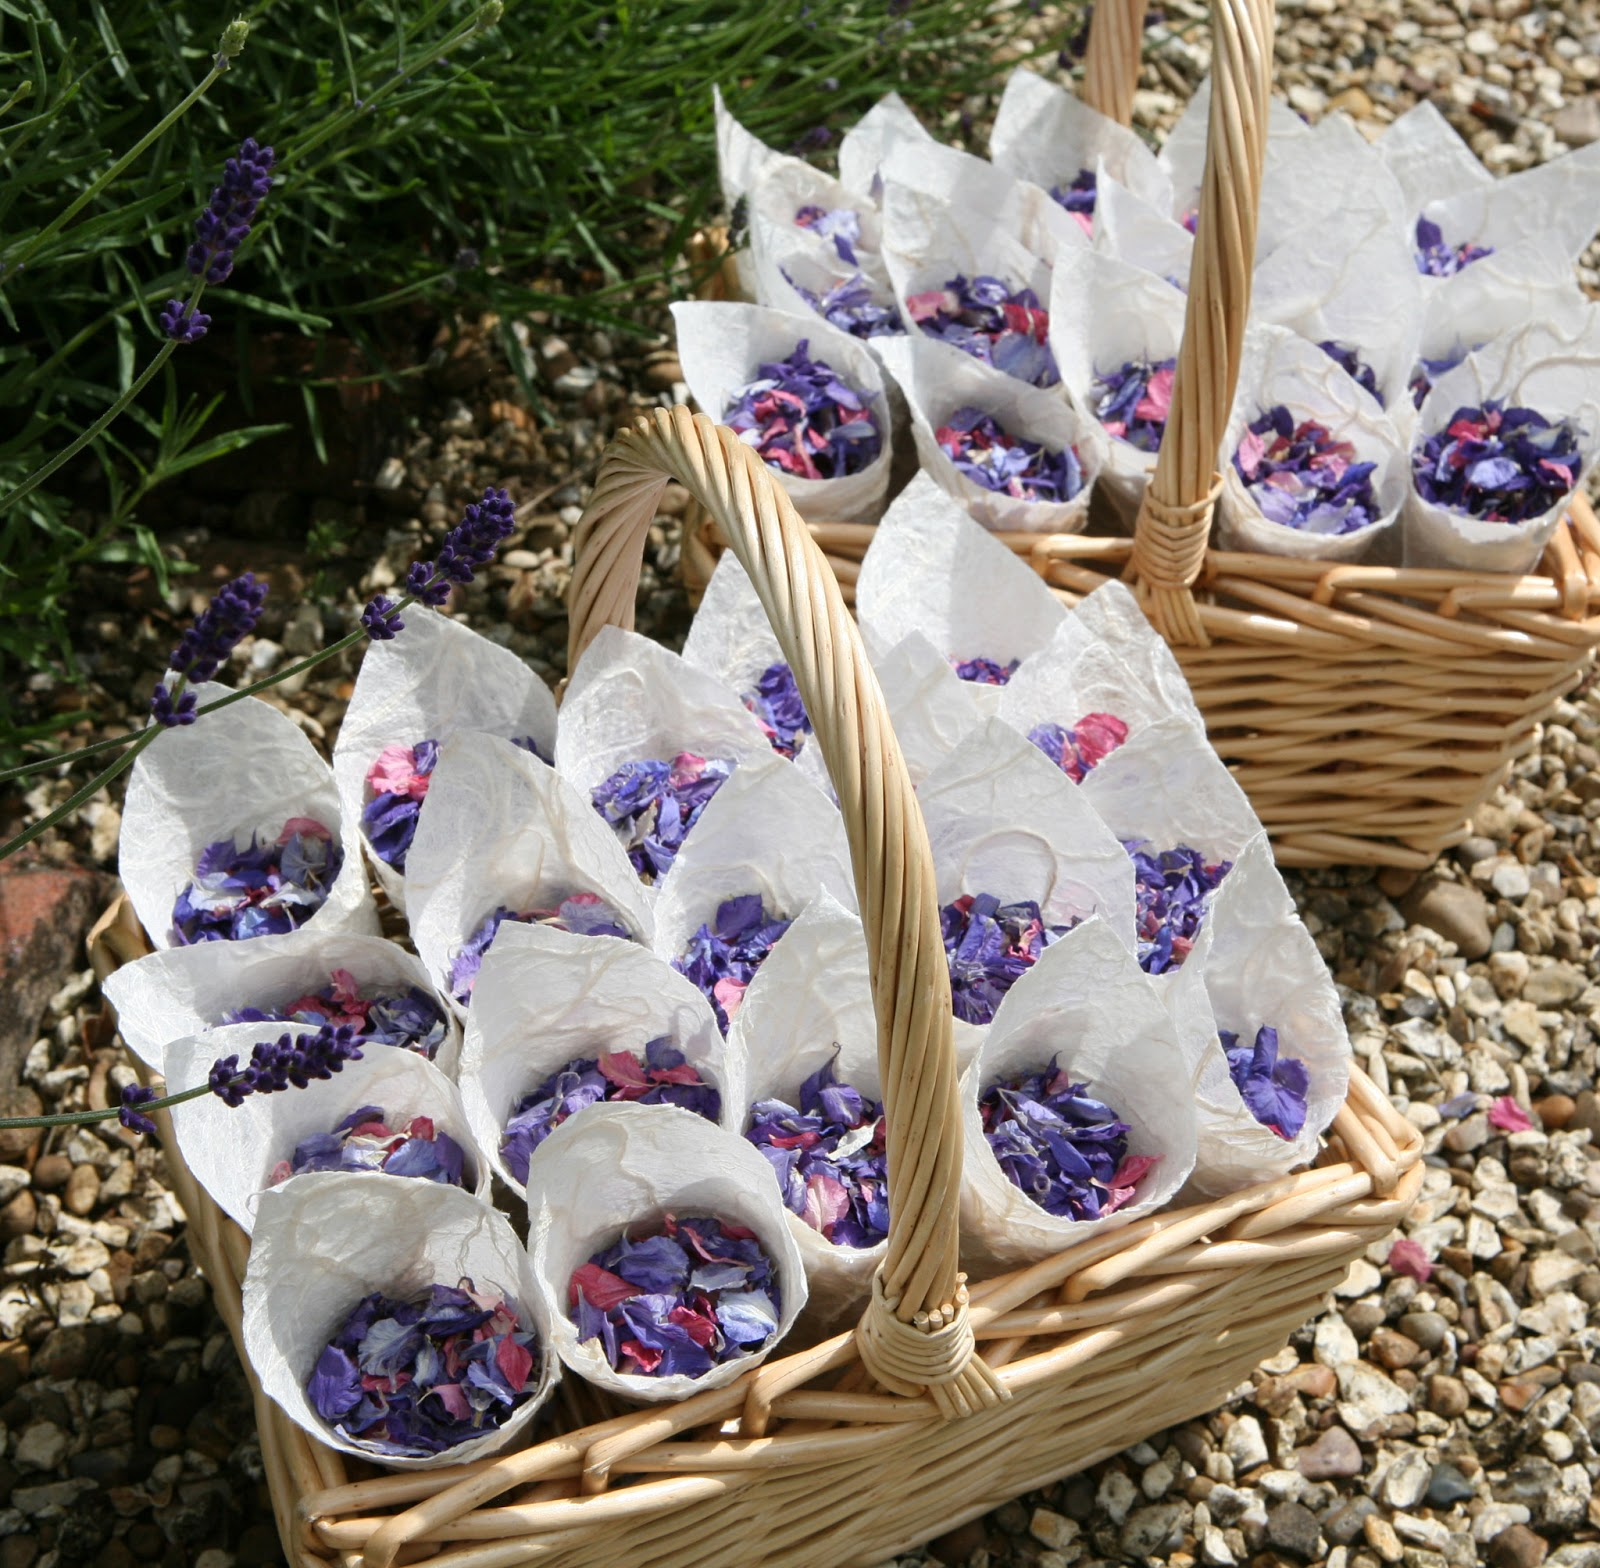 The confetti blog choosing your petal confetti tips advice rectangular baskets textured cones and delphinium petals izmirmasajfo